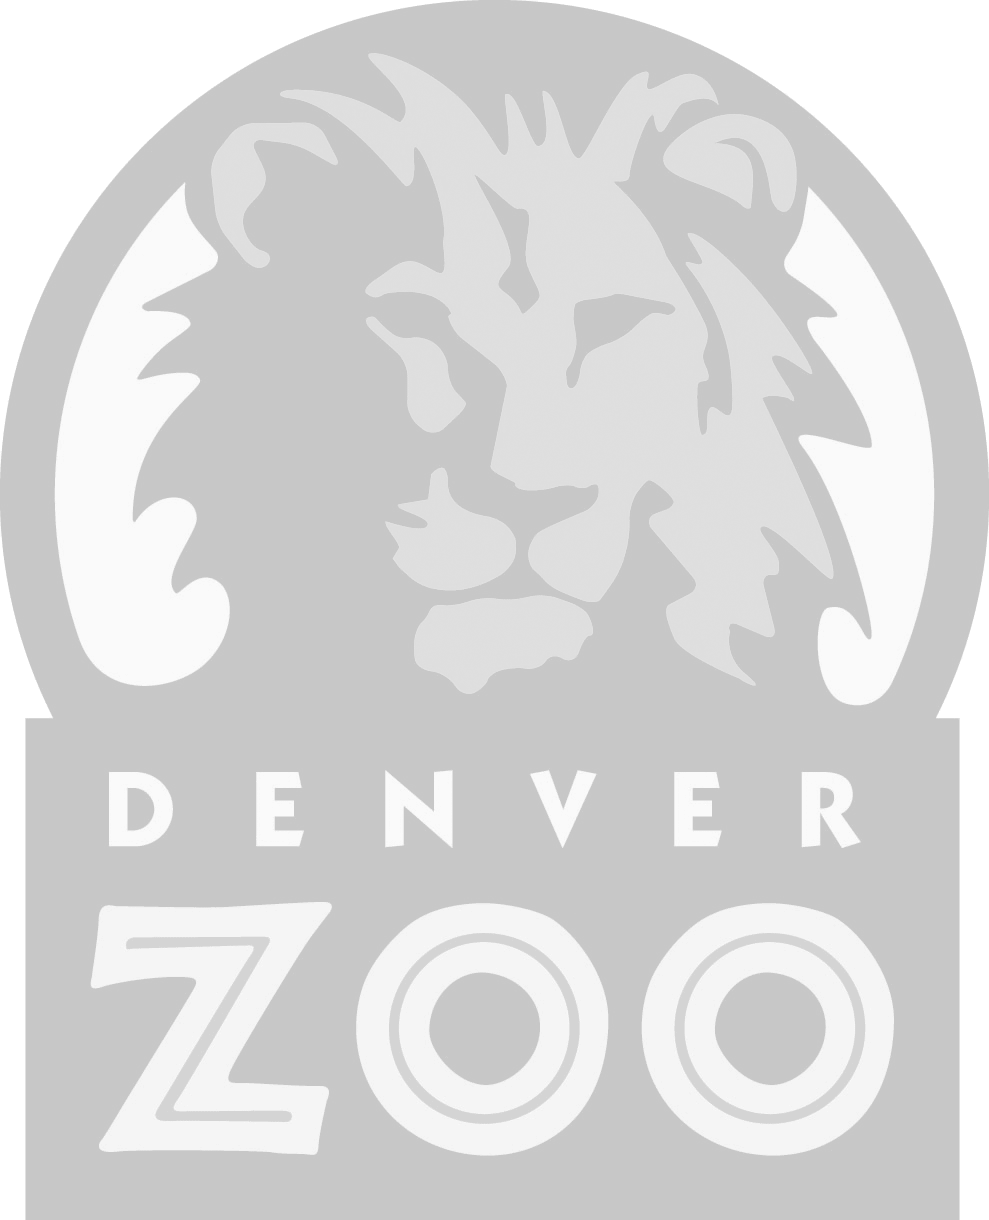 denver-zoo-logo-i1.png